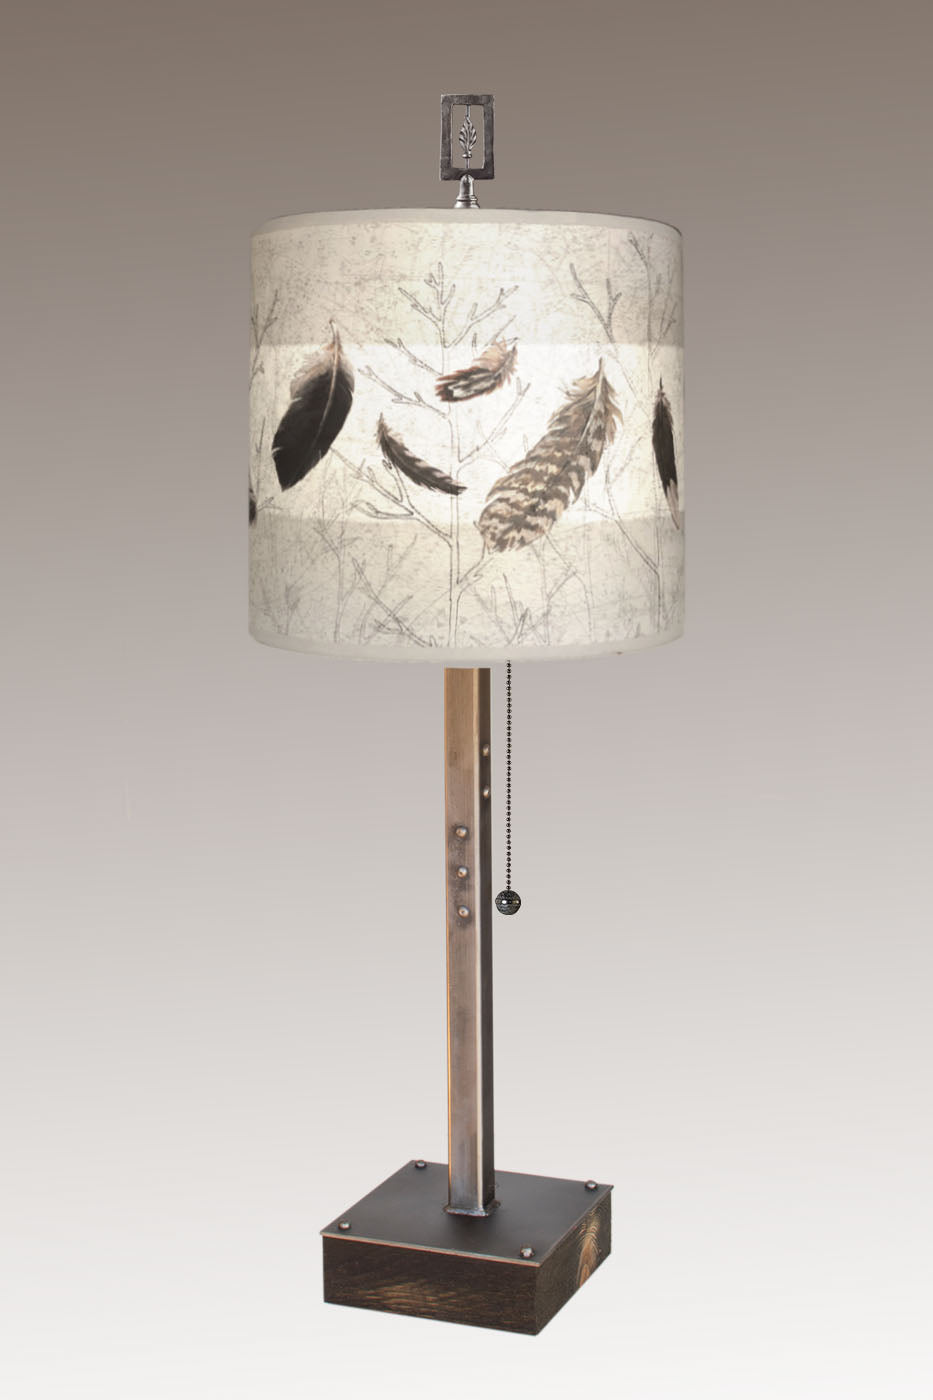 Steel Table Lamp on Wood with Medium Drum Shade in Feathers in Pebble